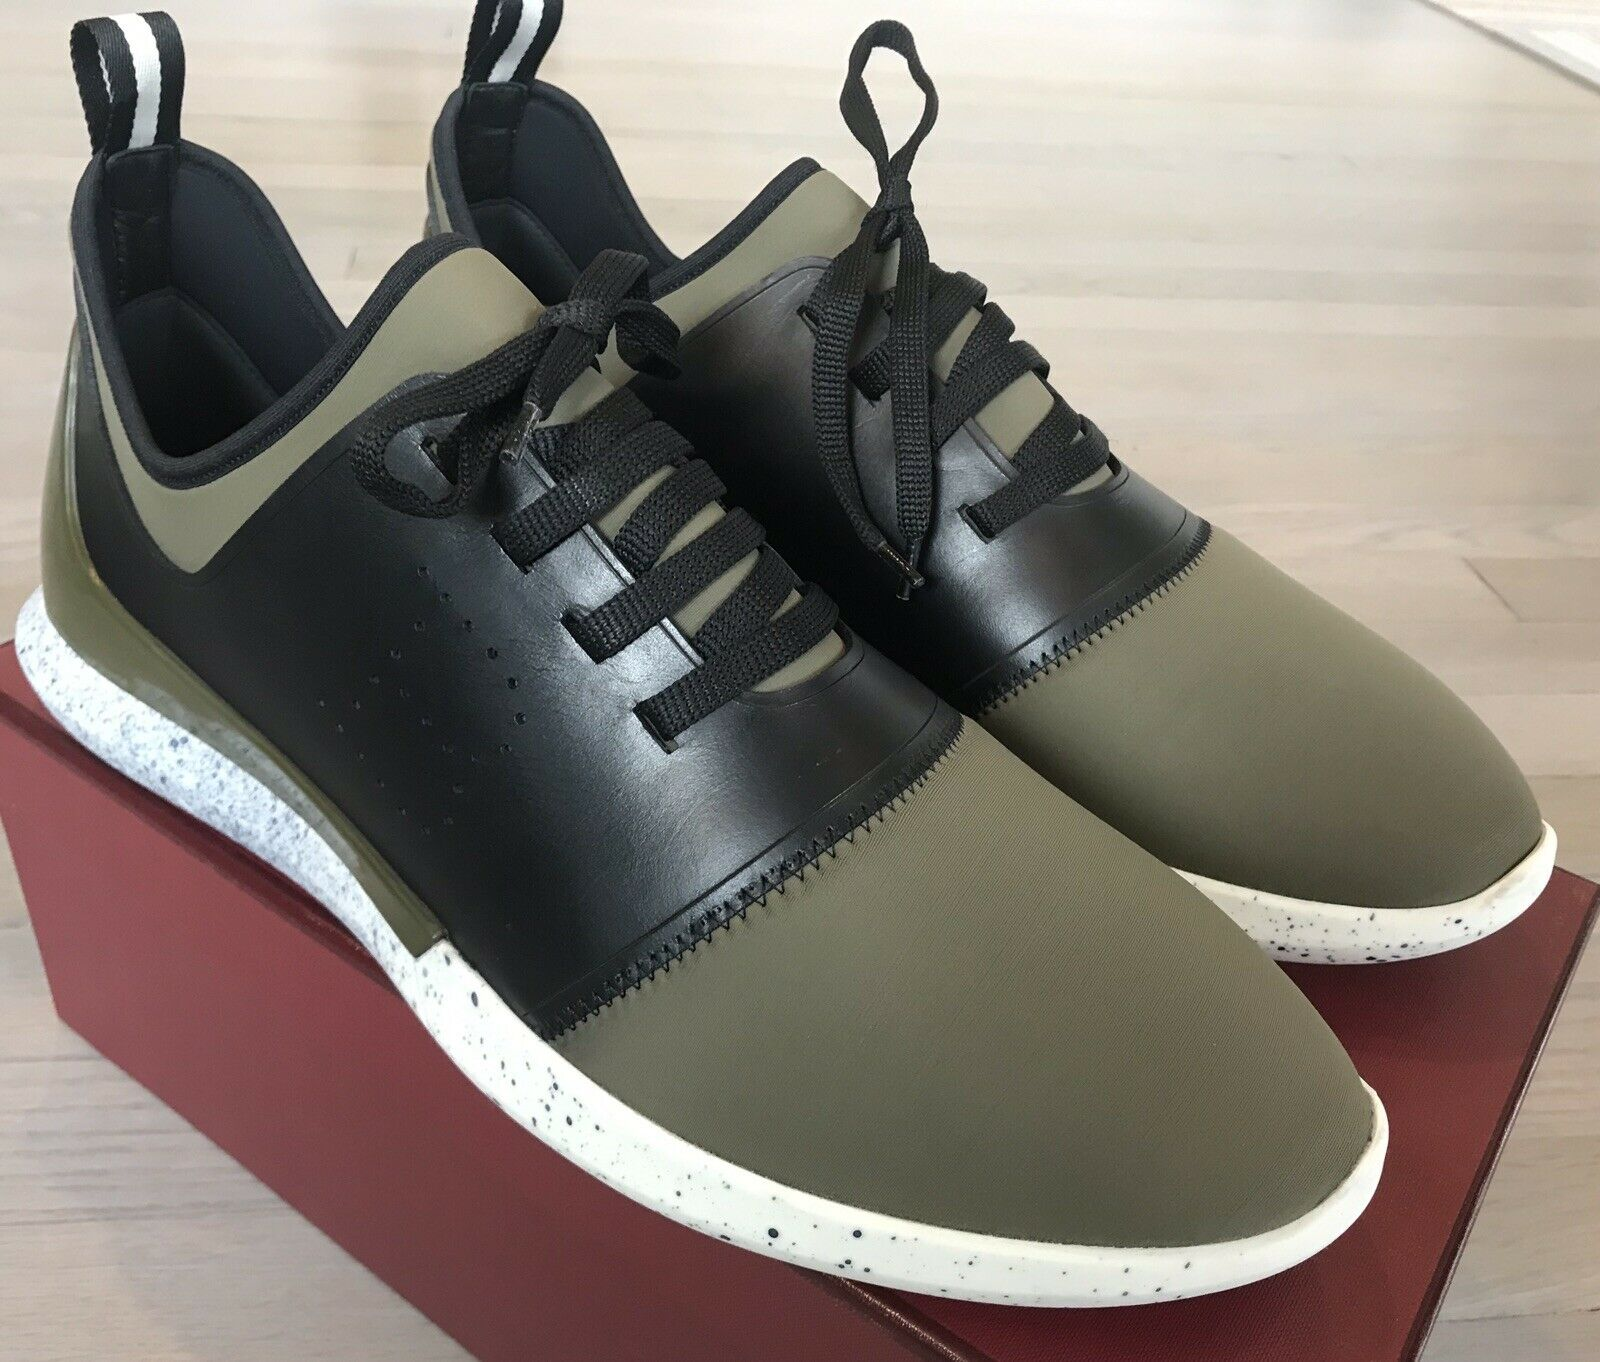 580  Bally Avro 31 Leather and Neoprene Sneakers size US 11 Made In